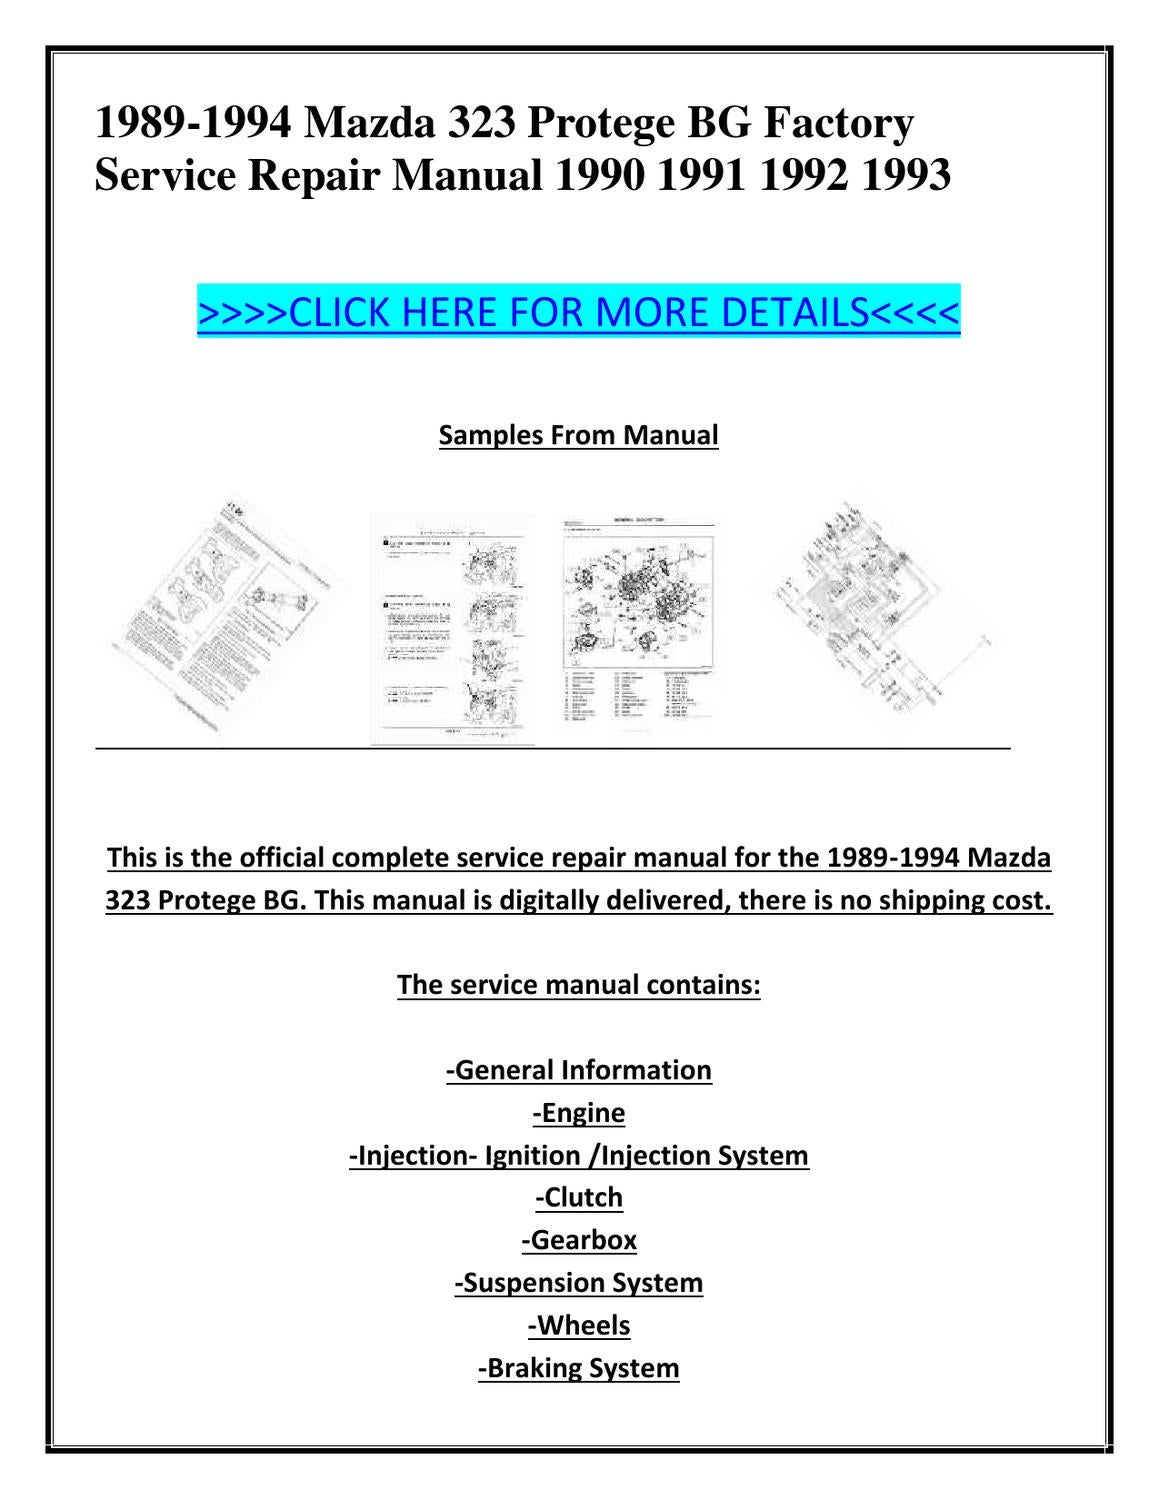 1989-1994 Mazda 323 Protege BG Factory Service Repair Manual 1990 1991 1992  1993 by ion ion - issuu